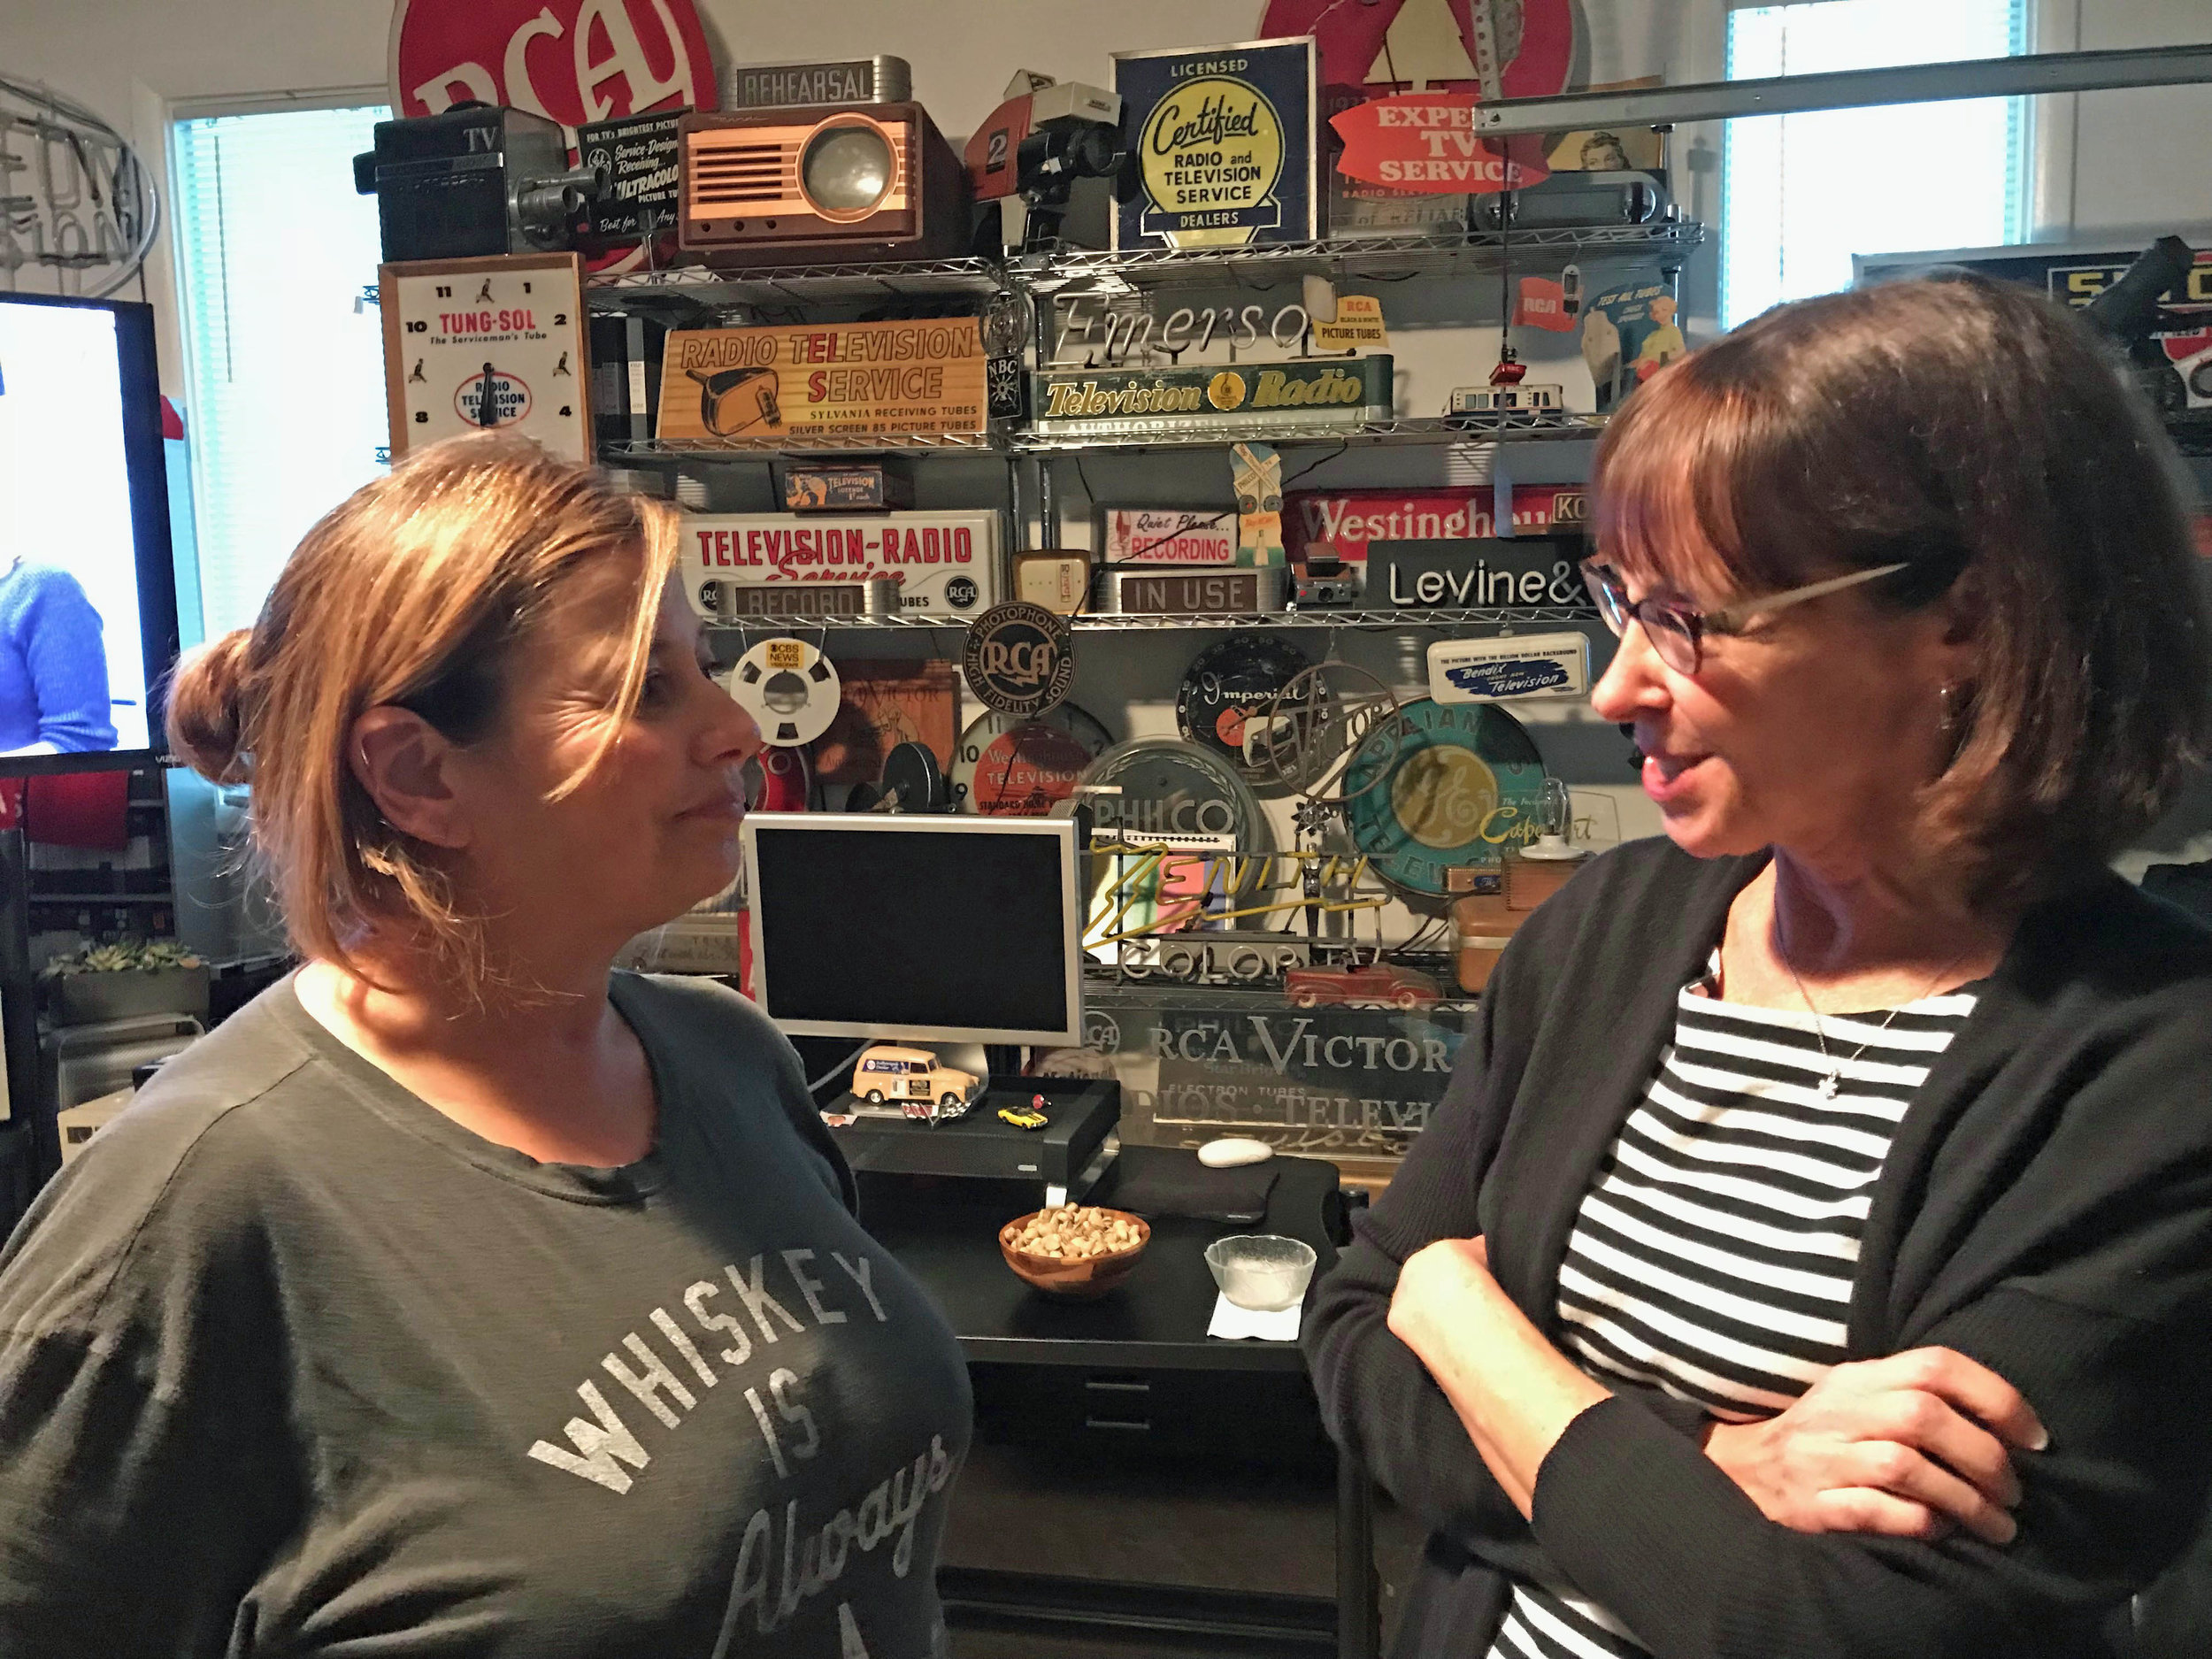 Geri and Mindy discussing the edit schedule for the remainder of the 2017 calendar year